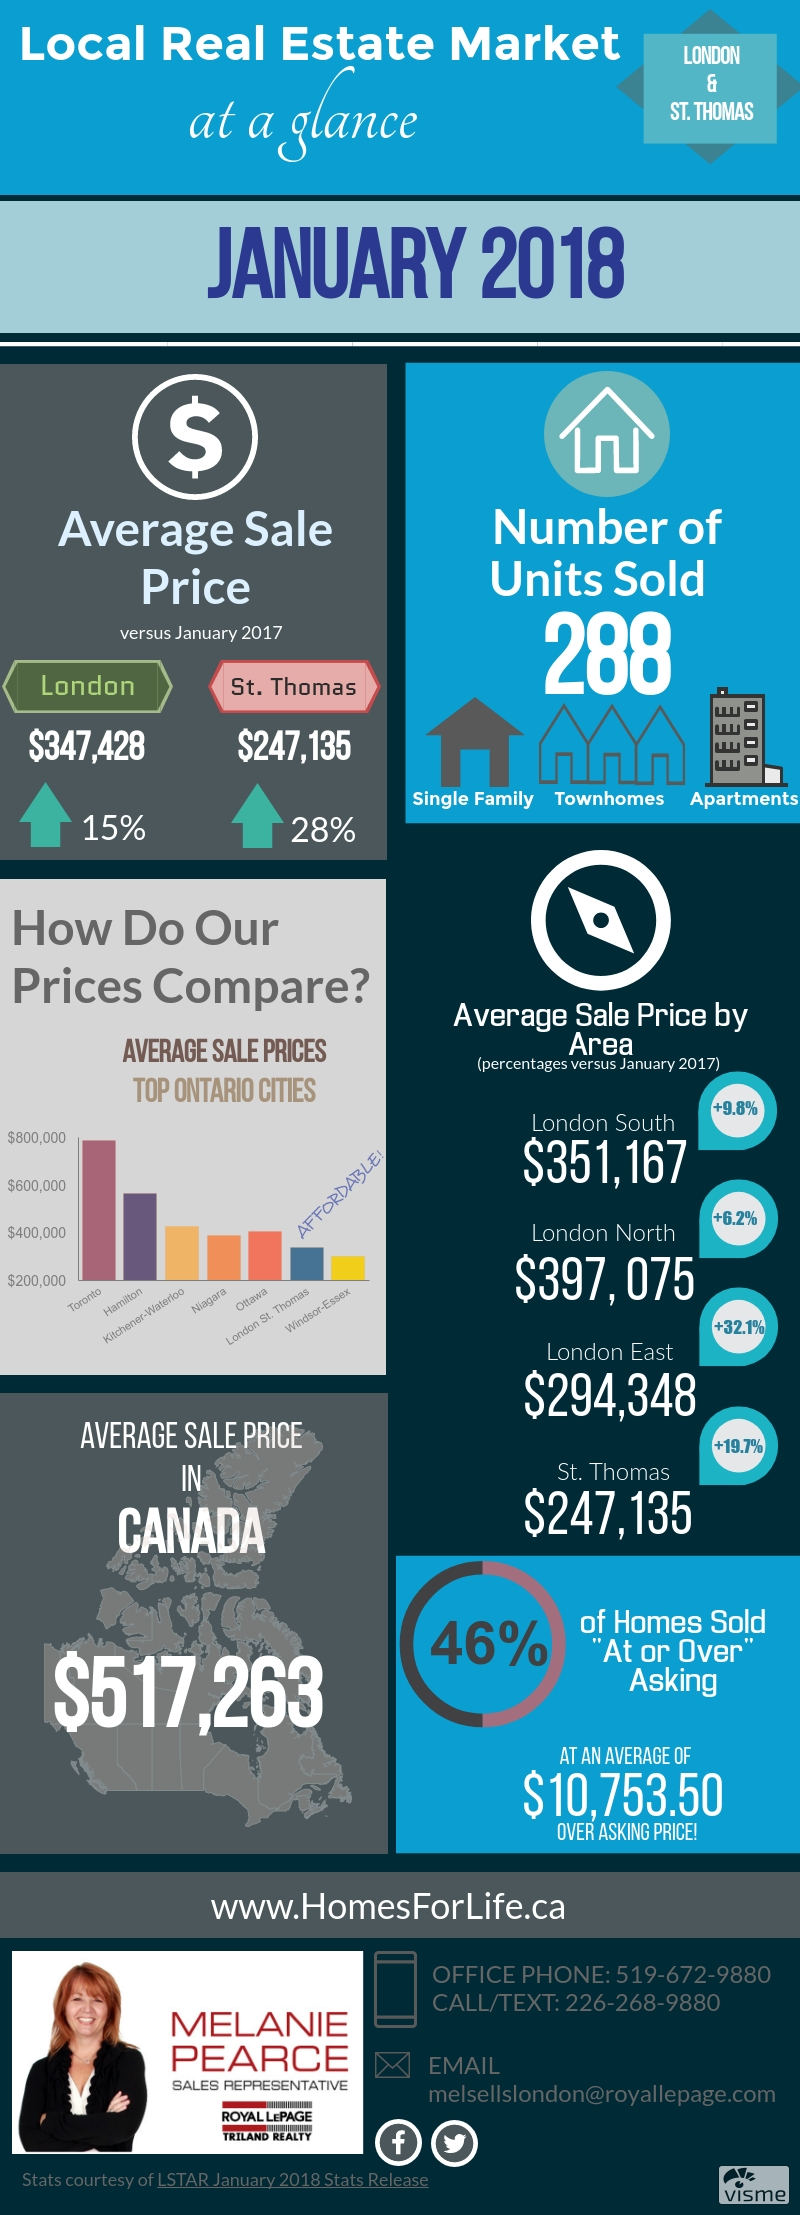 London-Ontario-Monthly-Market-Stats-January-2018.jpg